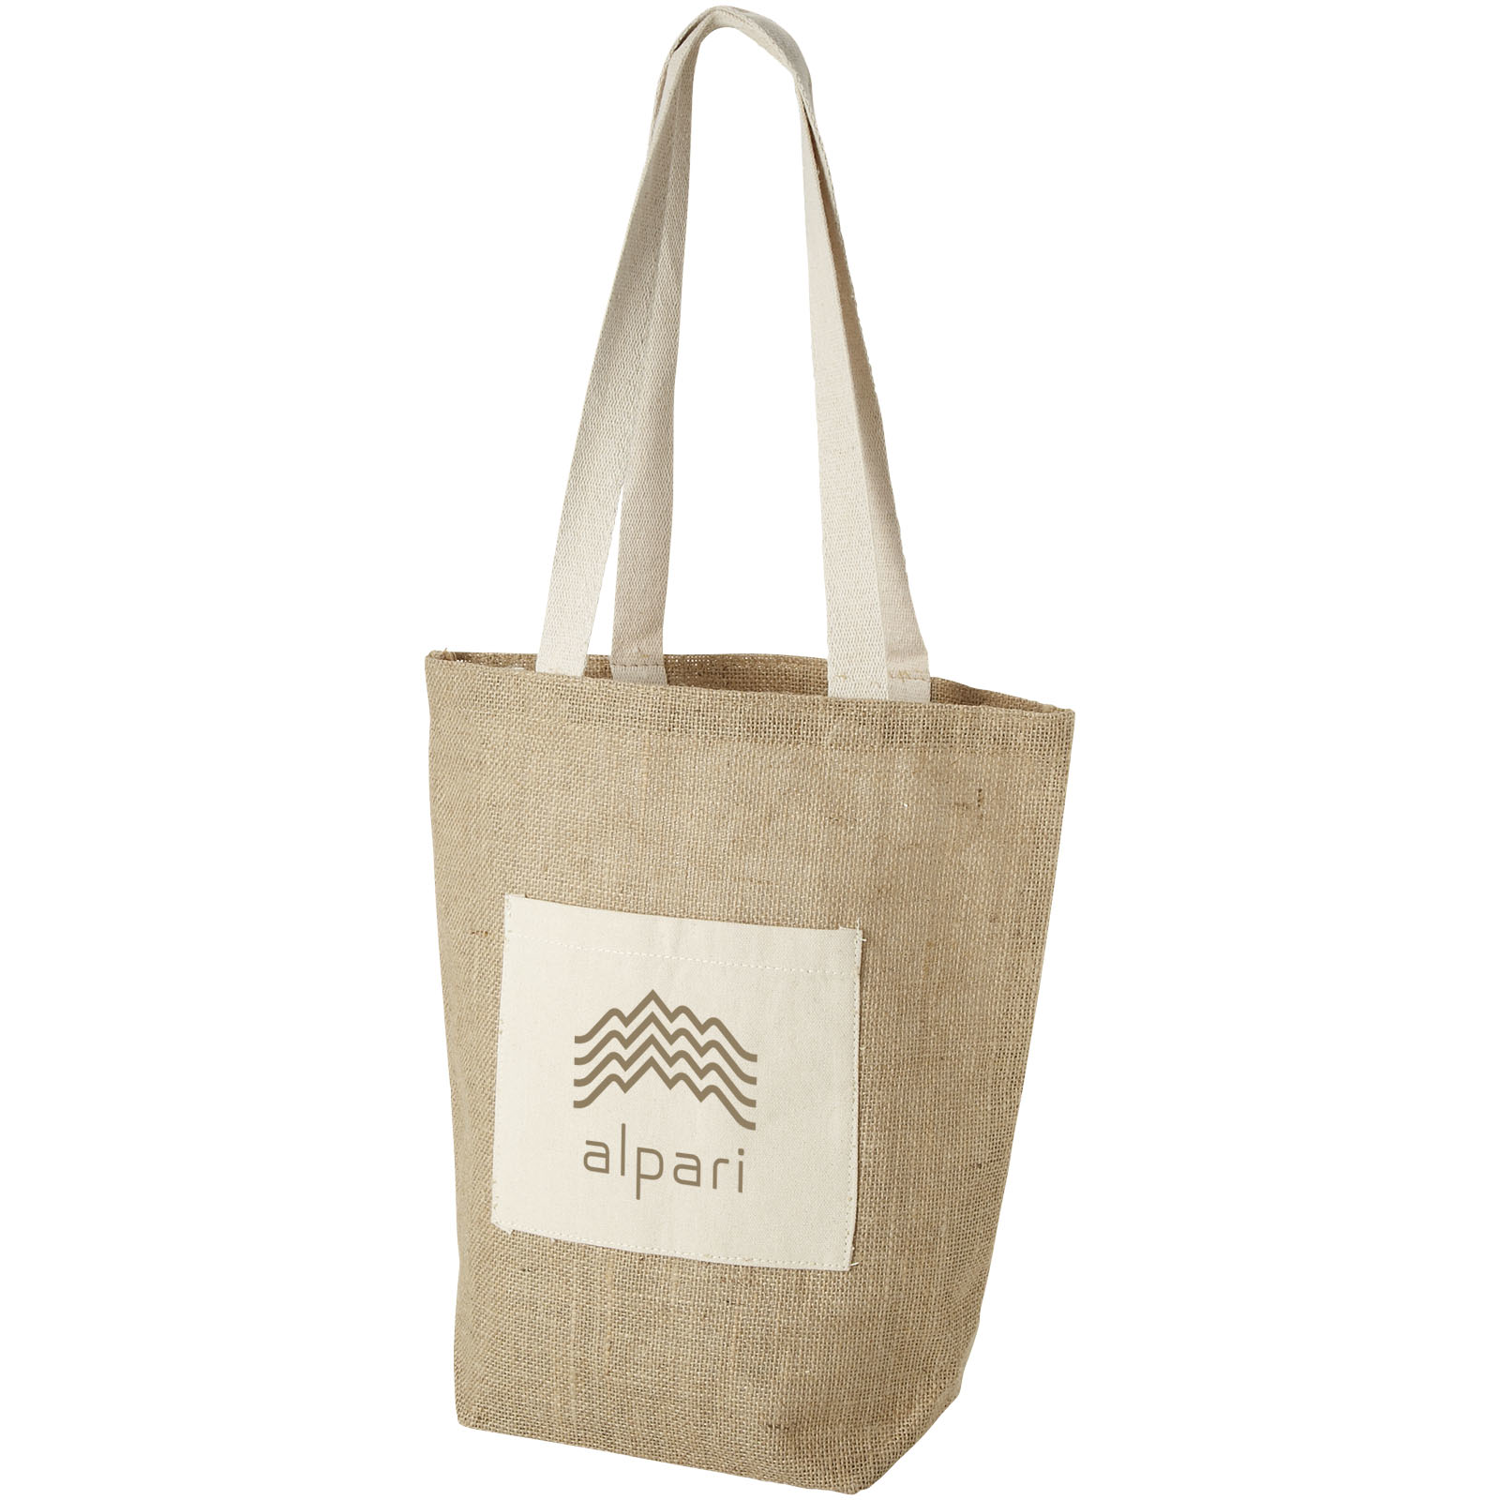 Calcutta Jute Tote Bag